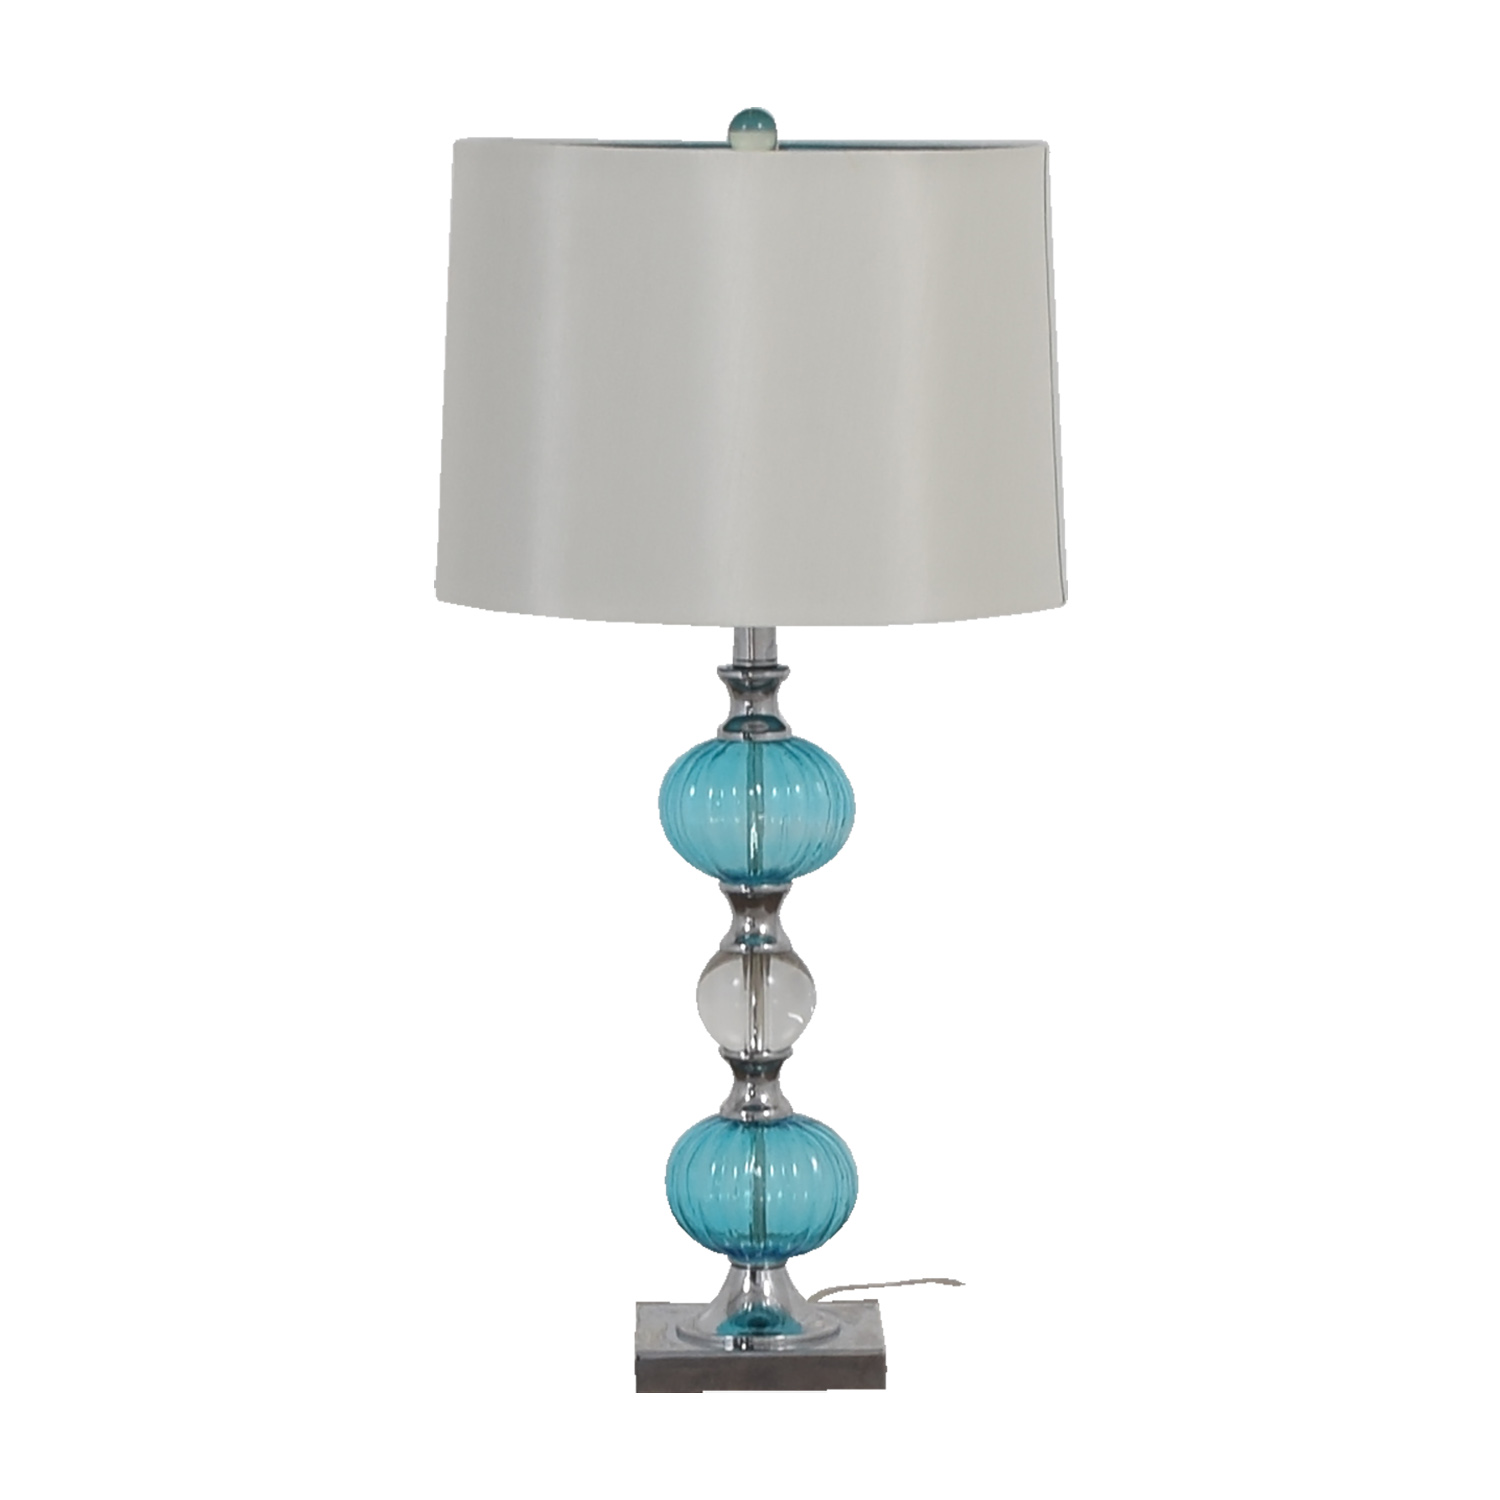 Buy Turquoise Glass Side Table Lamp Online ...